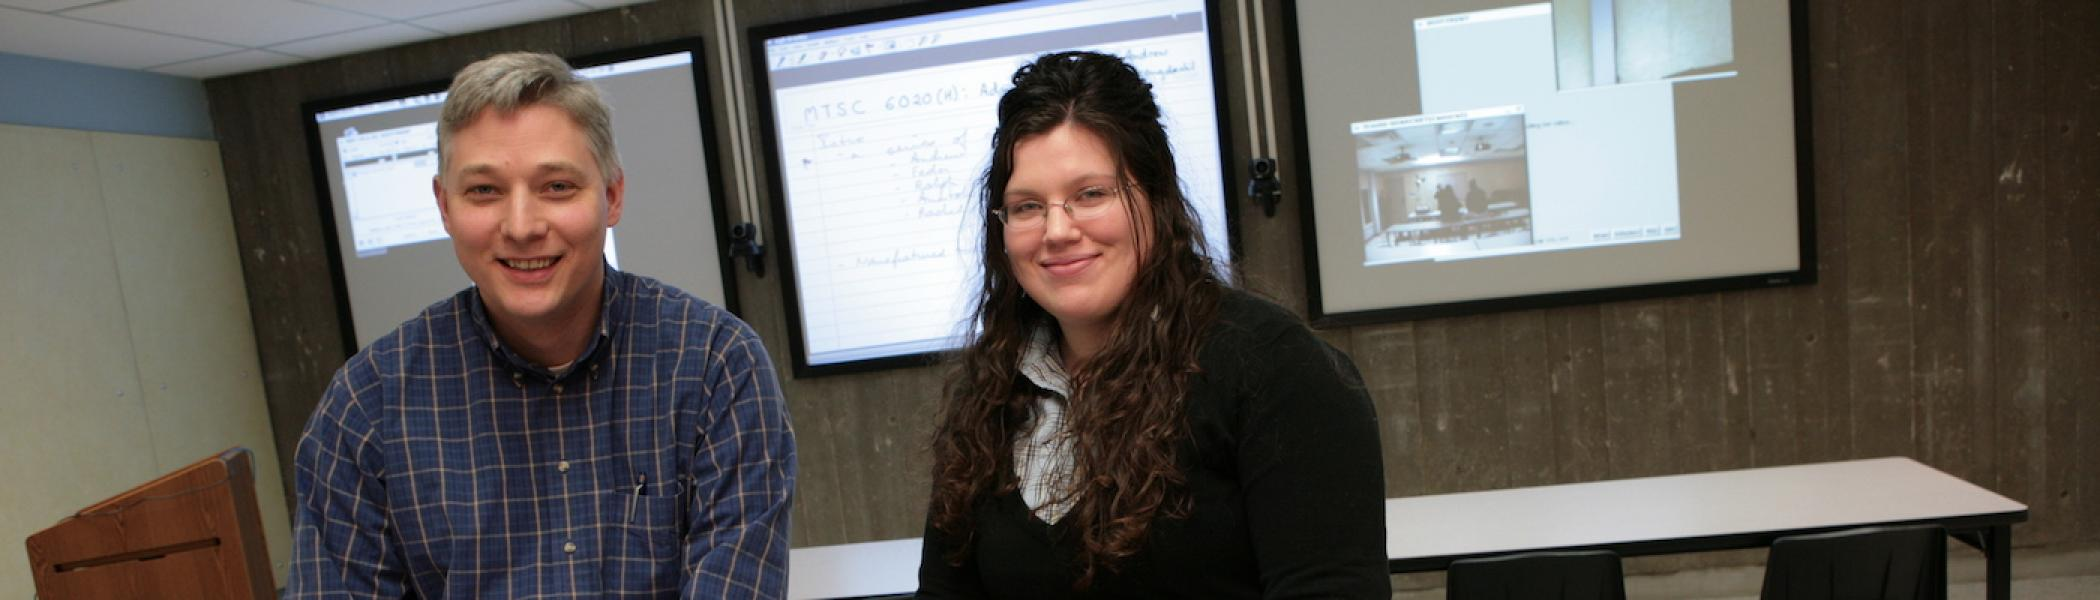 A faculty member and a graduate student sitting on a desk and smiling